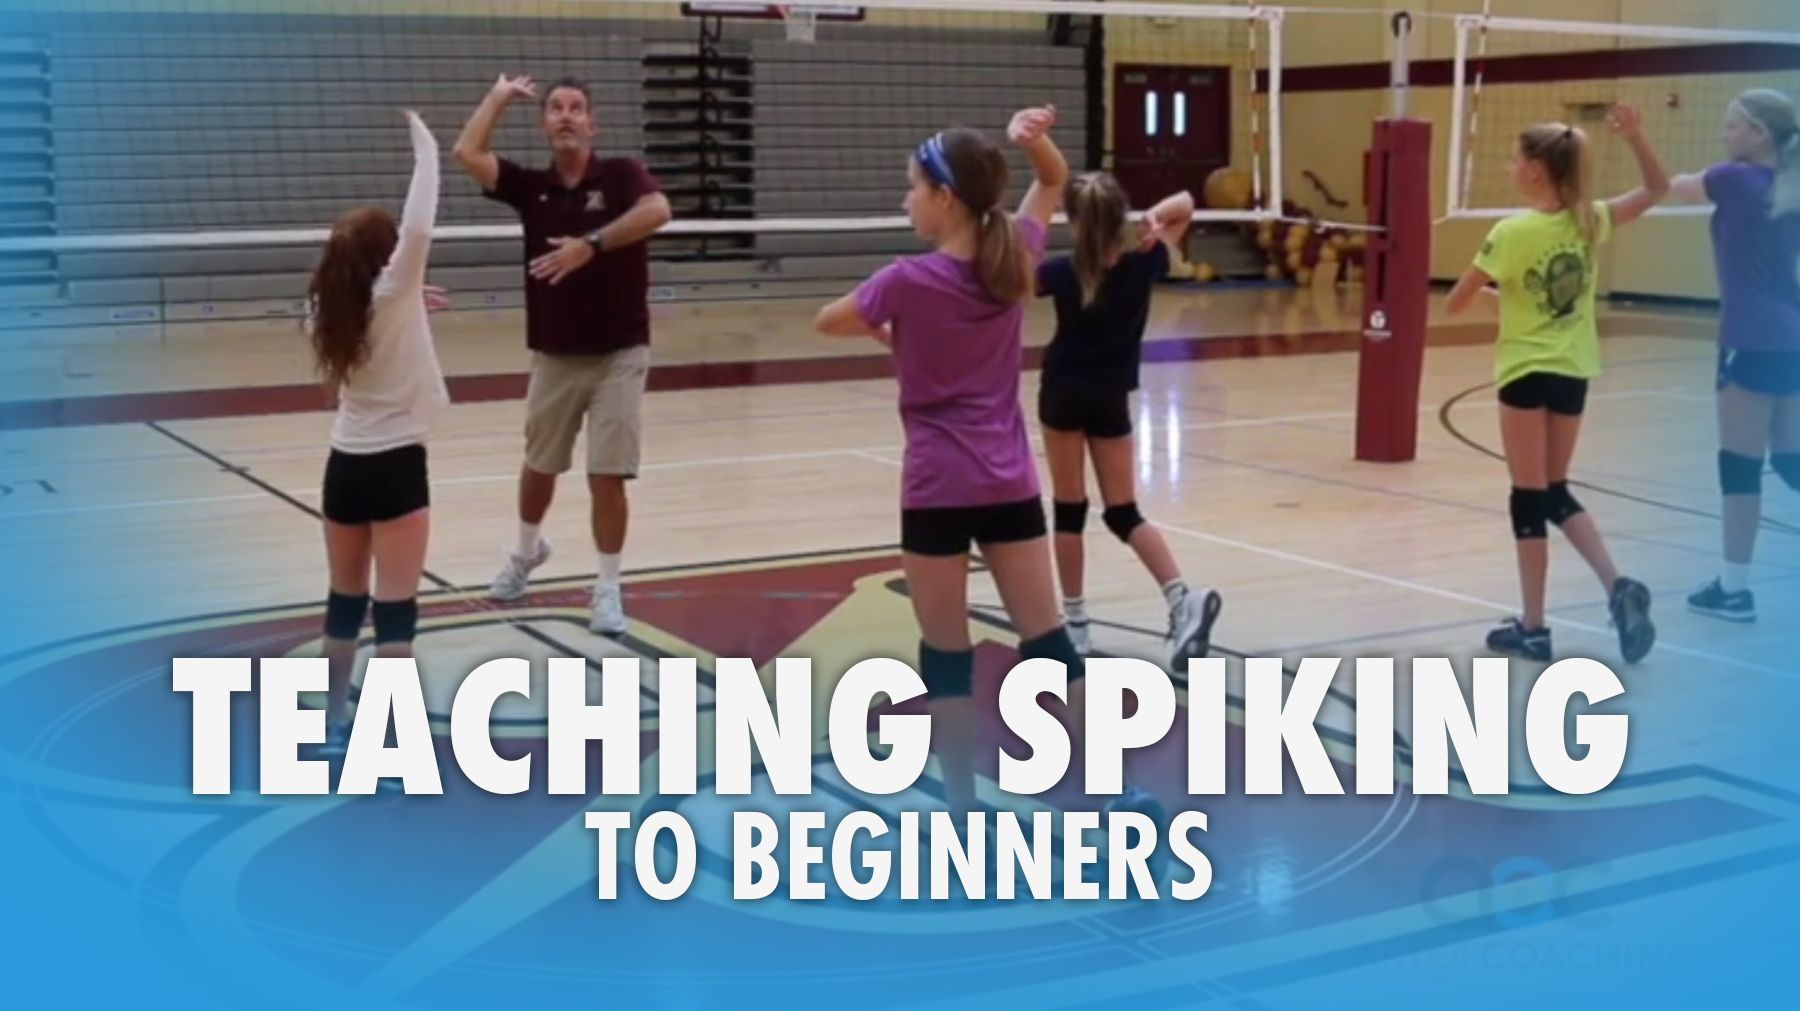 Teaching Spiking To Beginners Intermediates The Art Of Coaching Volleyball Volleyball Skills Coaching Volleyball Youth Volleyball